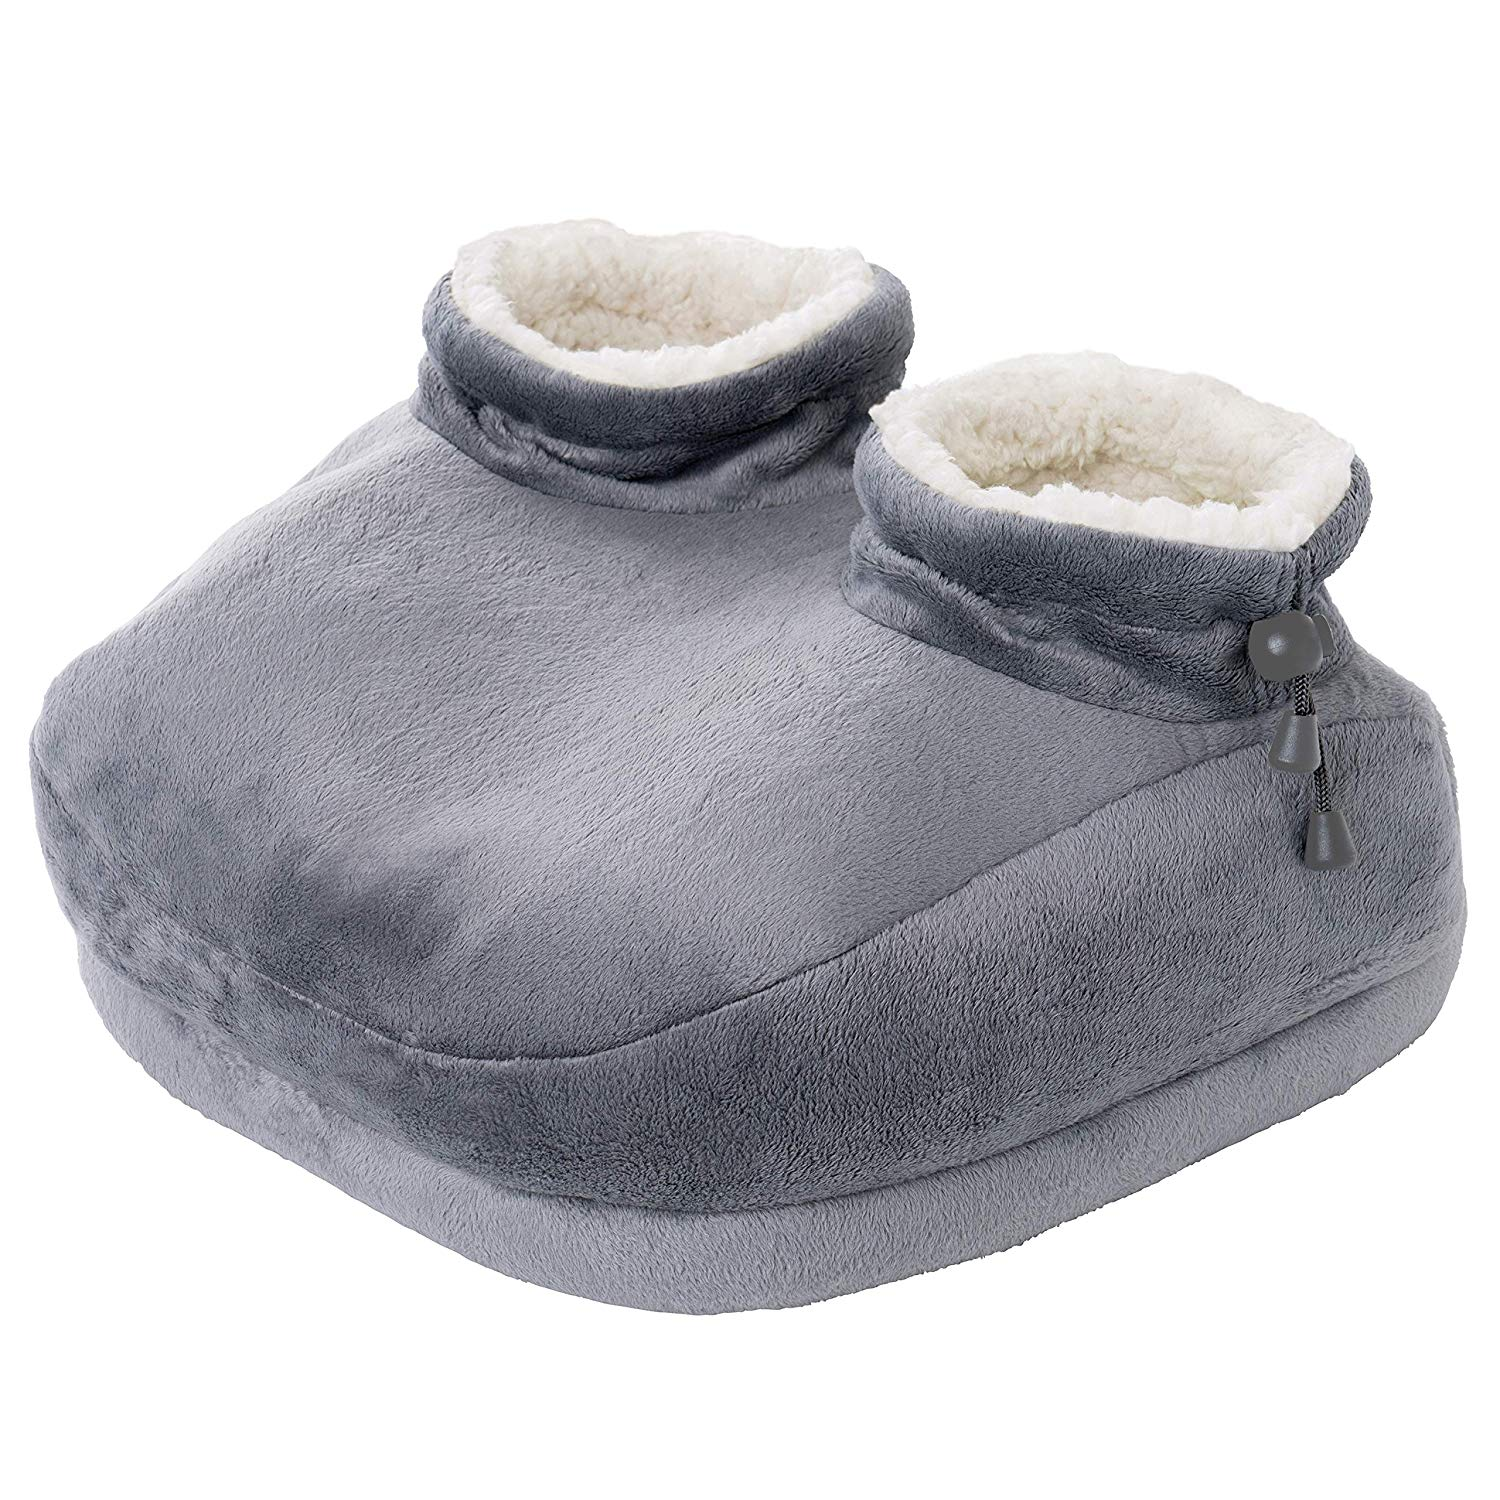 Pure Enrichment PureRelief Deluxe Foot Warmer - Super-Soft Sherpa-Lined, Fast-Heating Electric Boots